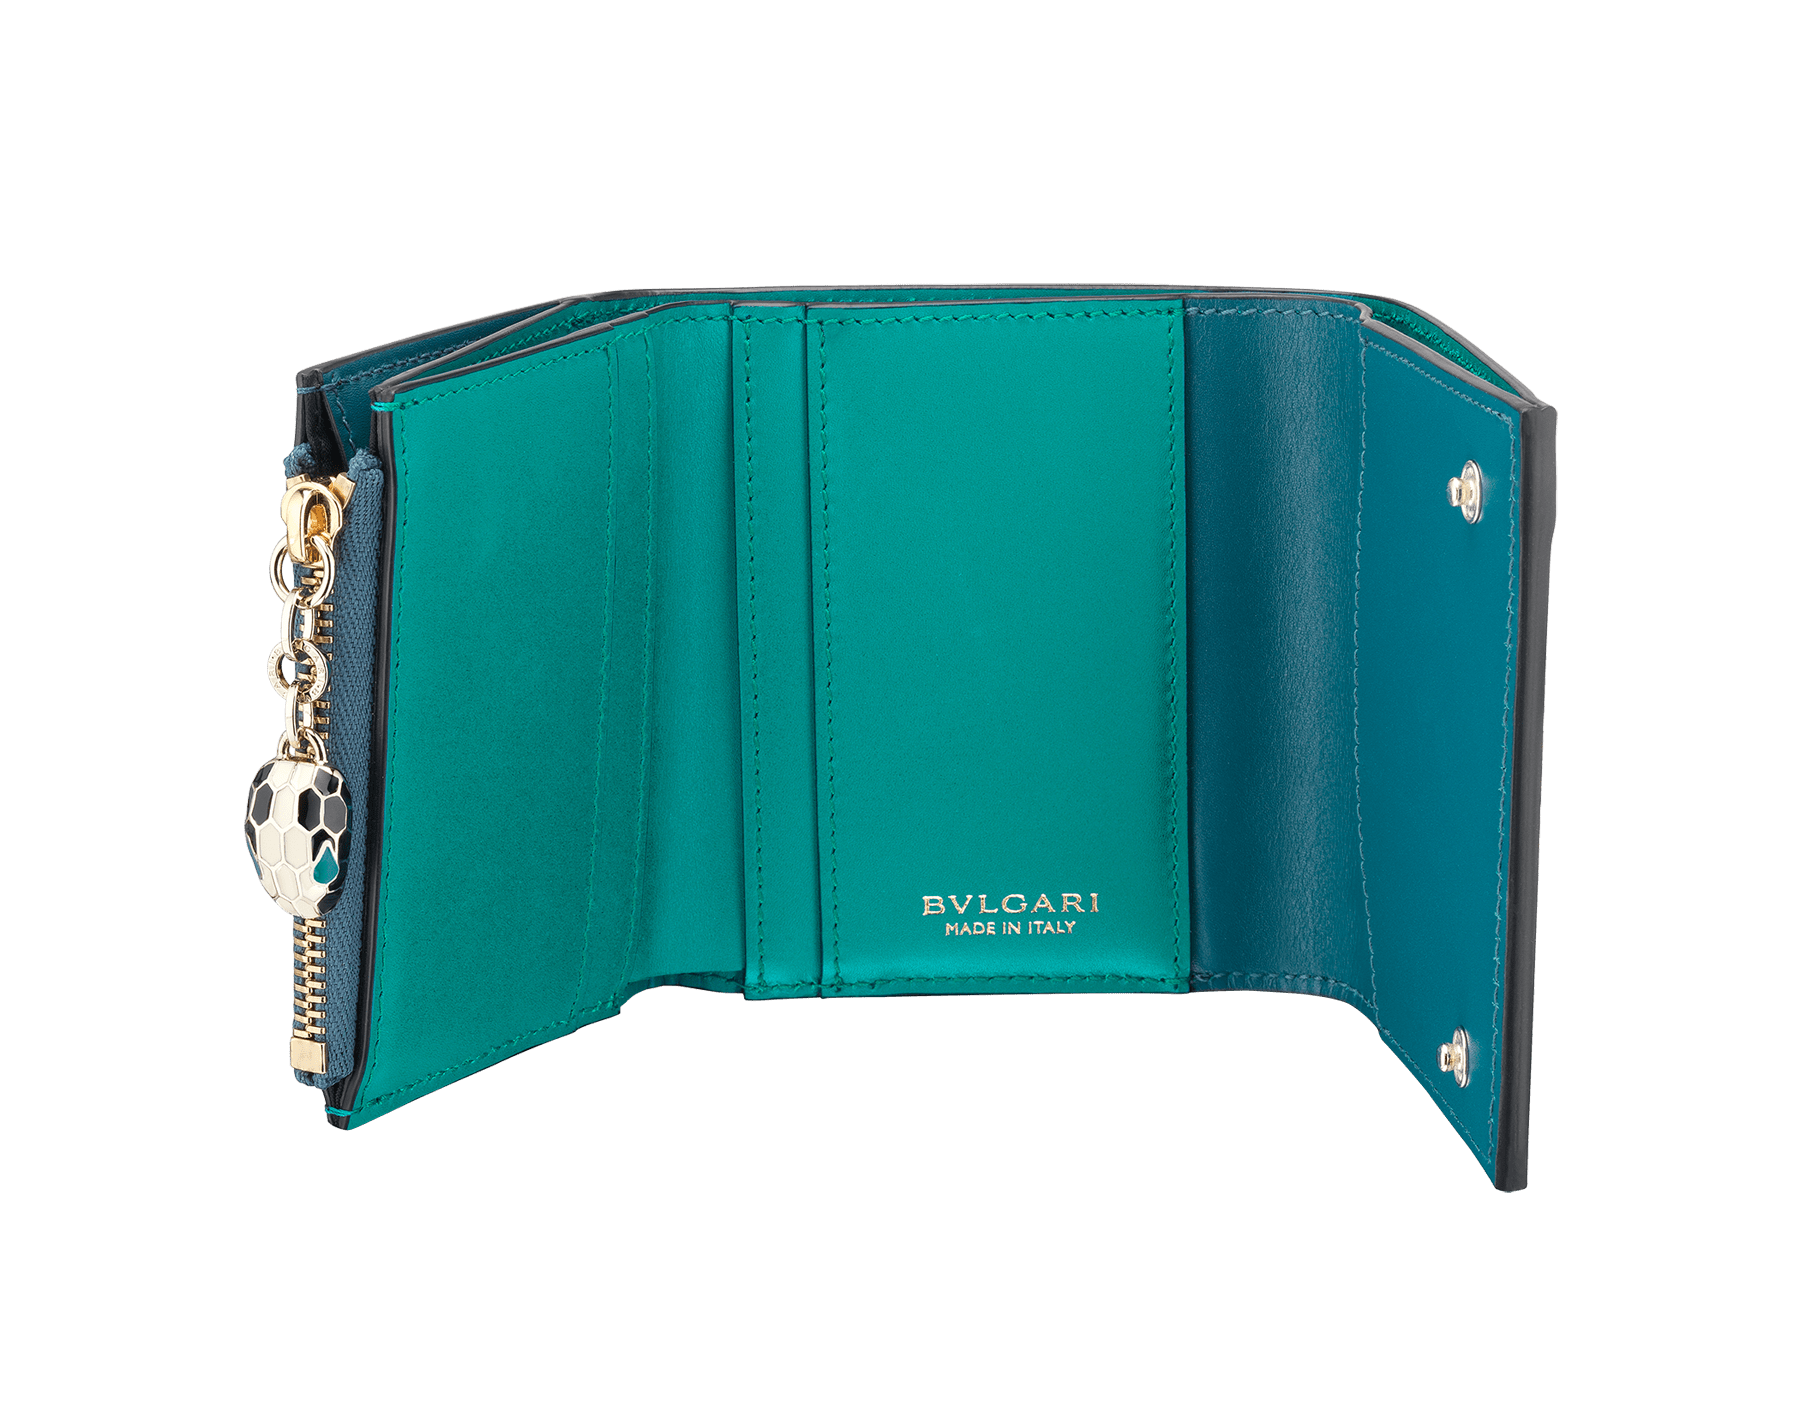 Serpenti Forever super compact wallet in deep jade and tropical turquoise calf leather. Iconic snakehead stud closure in black and white enamel with green malachite enamel eyes. 288034 image 2